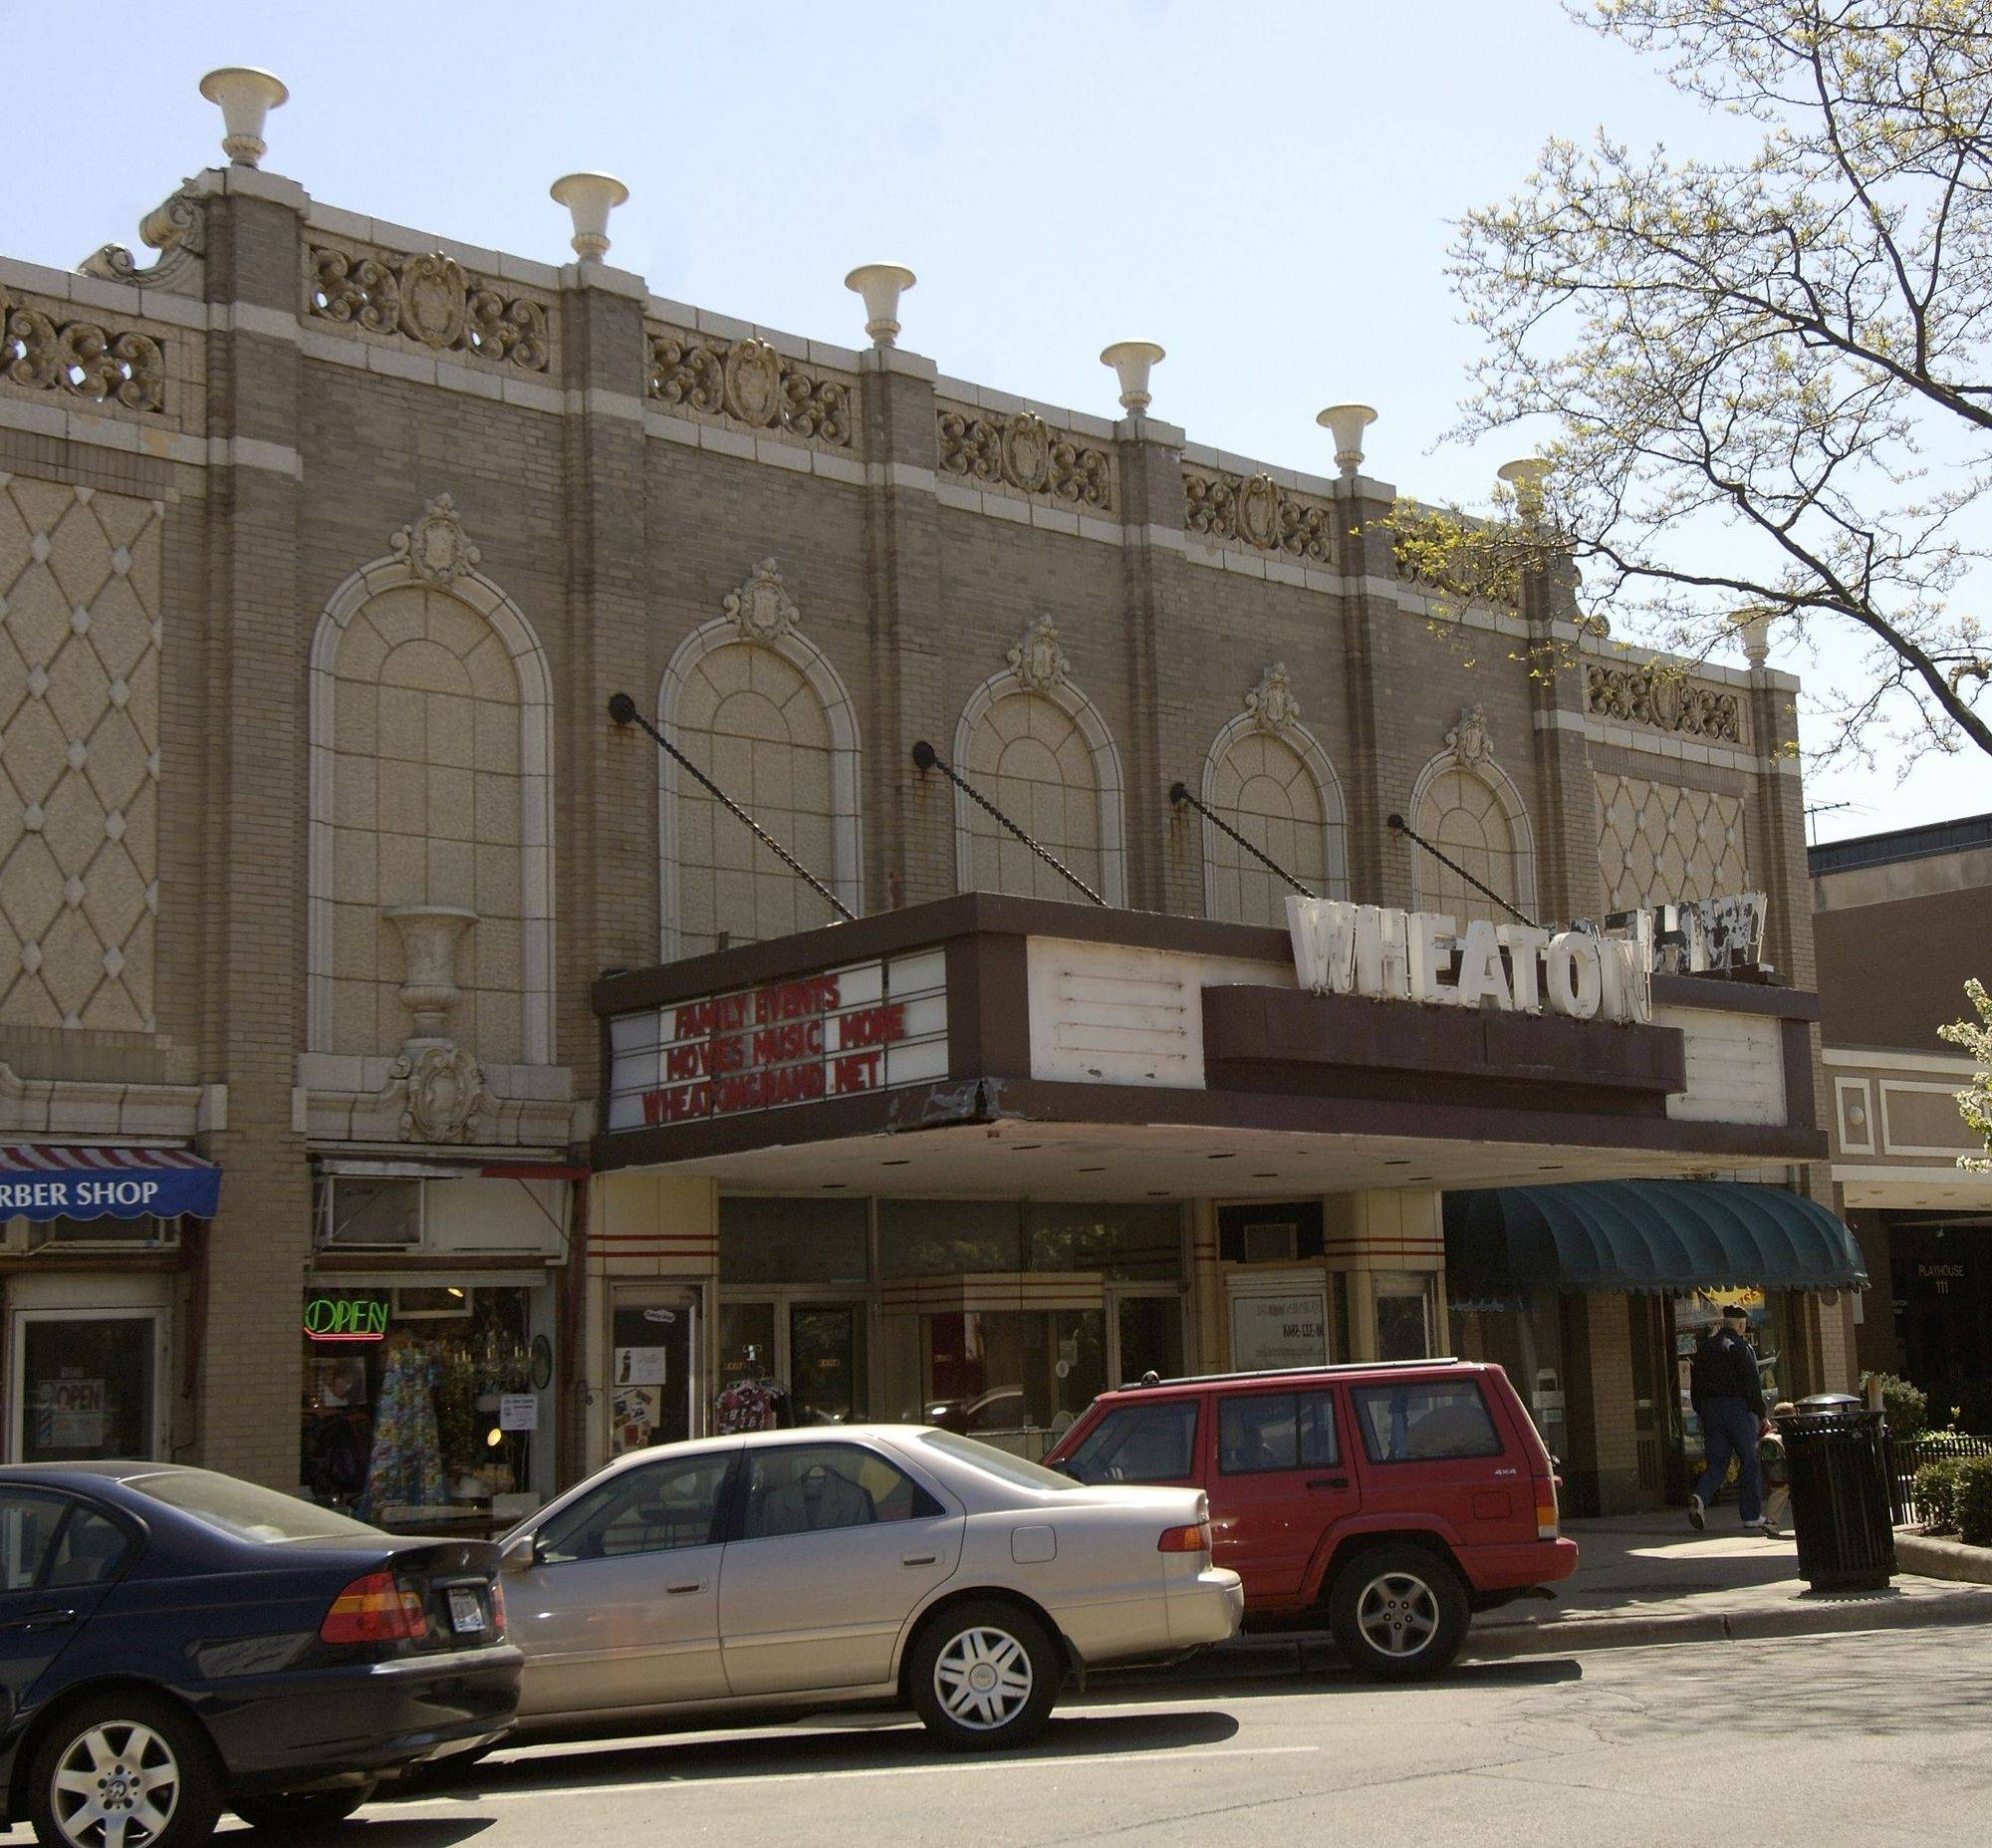 Grand Theater Corp., the not-for-profit group that oversees management of the Wheaton Grand Theater, has lost ownership of the historic building in downtown Wheaton.